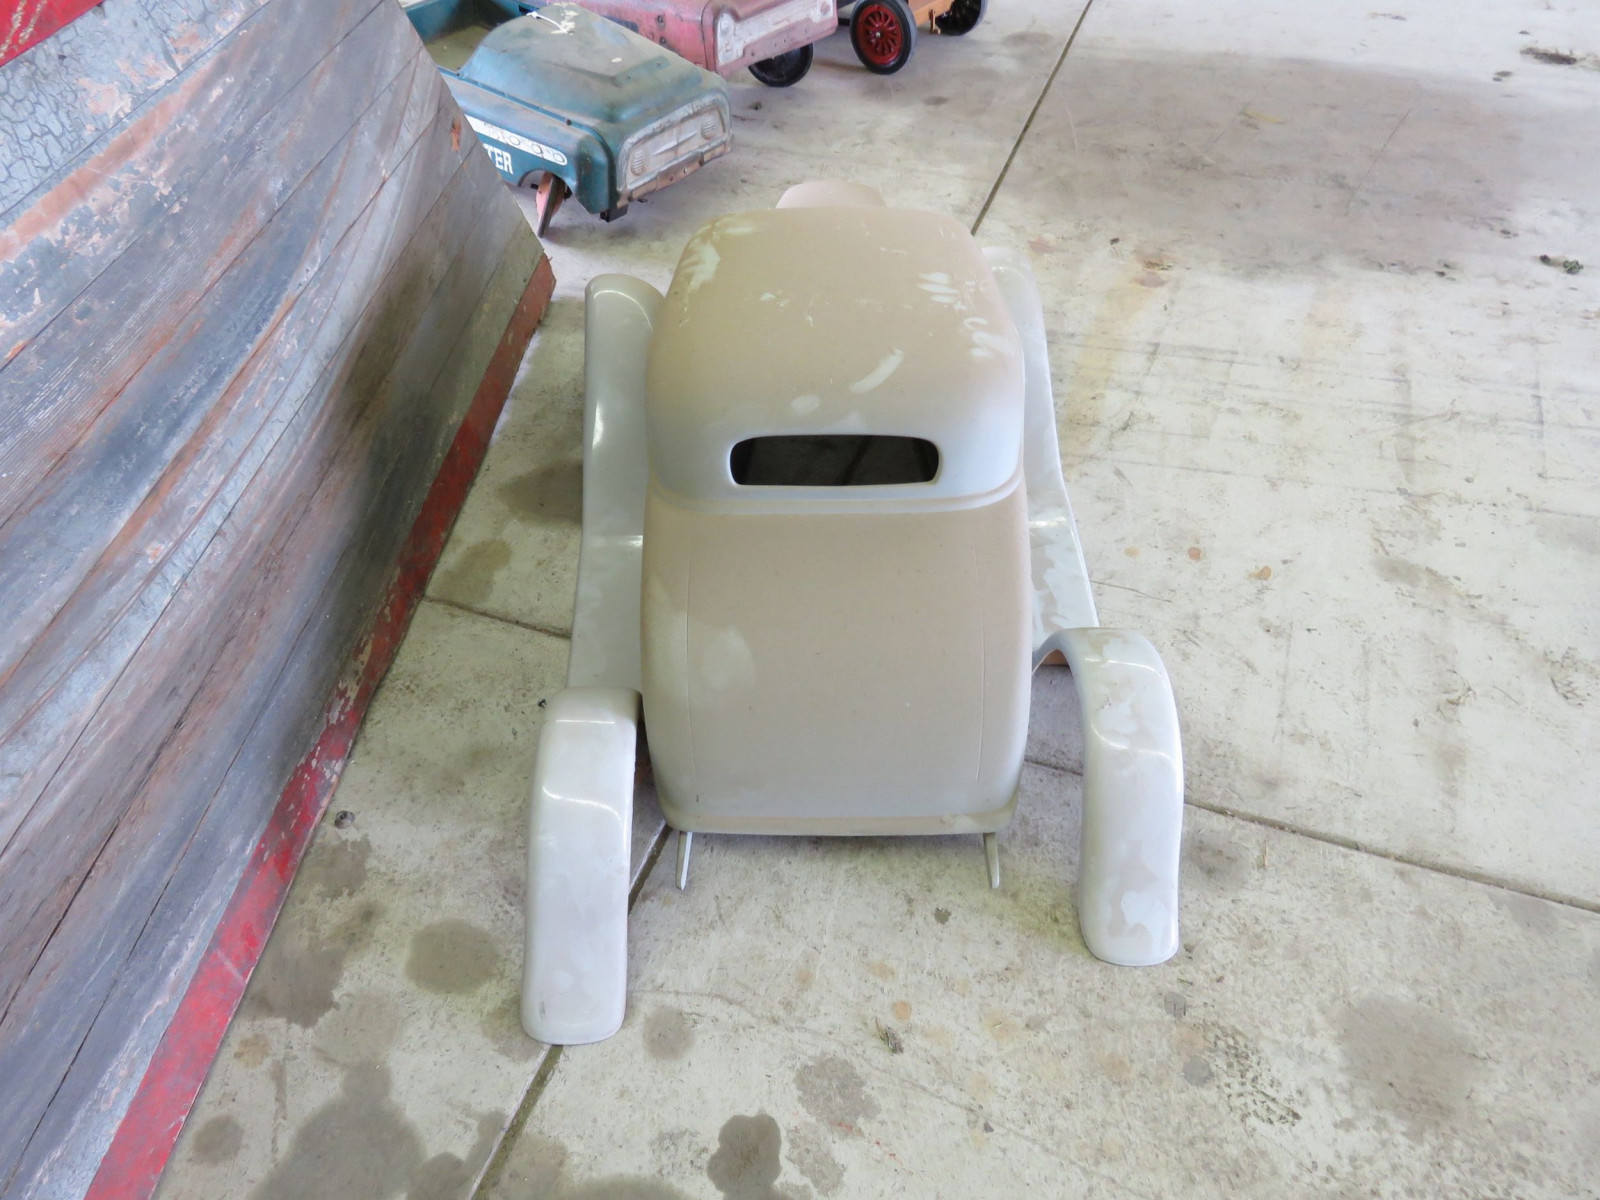 1932 Ford Coupe Fiberglass Body for Project Pedal Car - Image 2